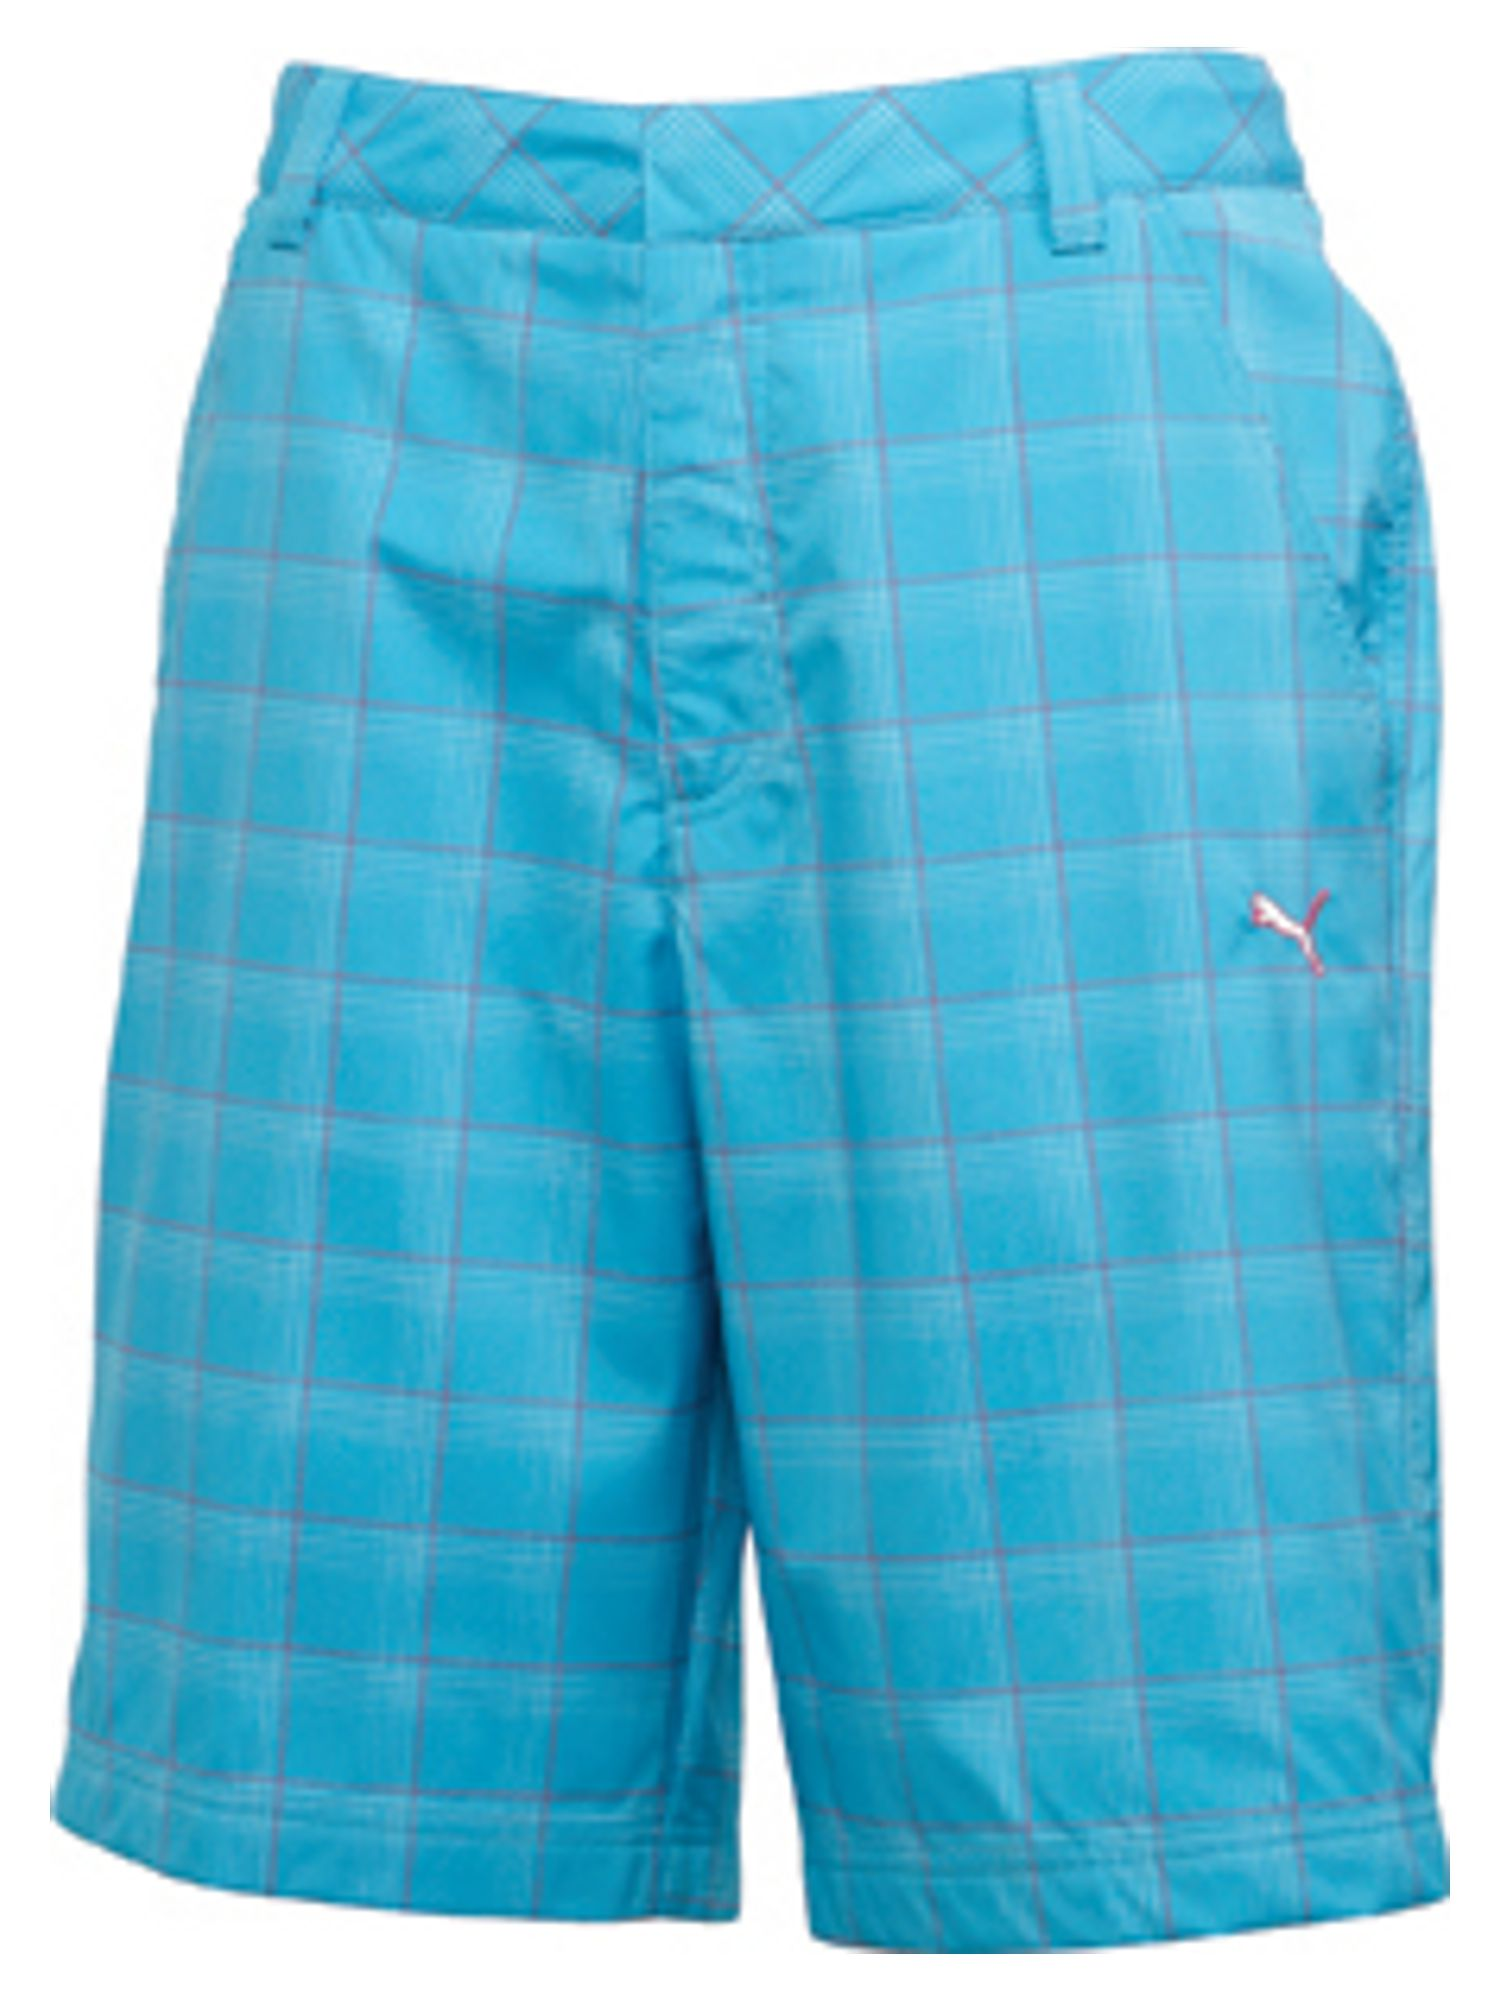 Golf plaid tech short